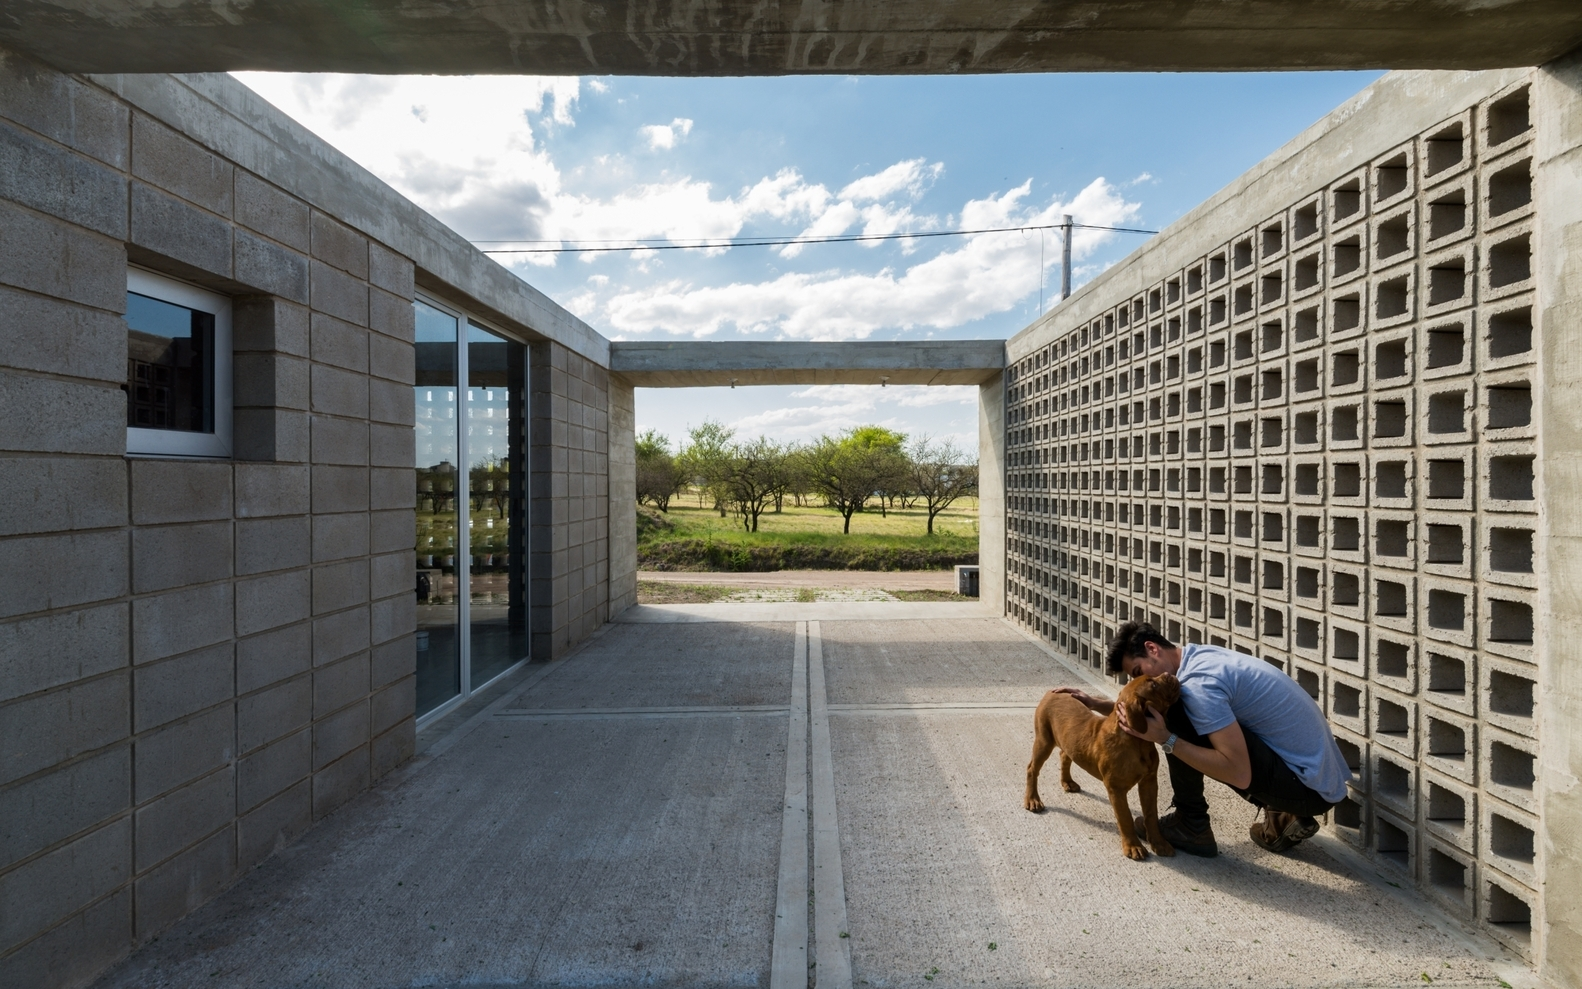 Gallery of Concrete Blocks in Architecture: How to Build